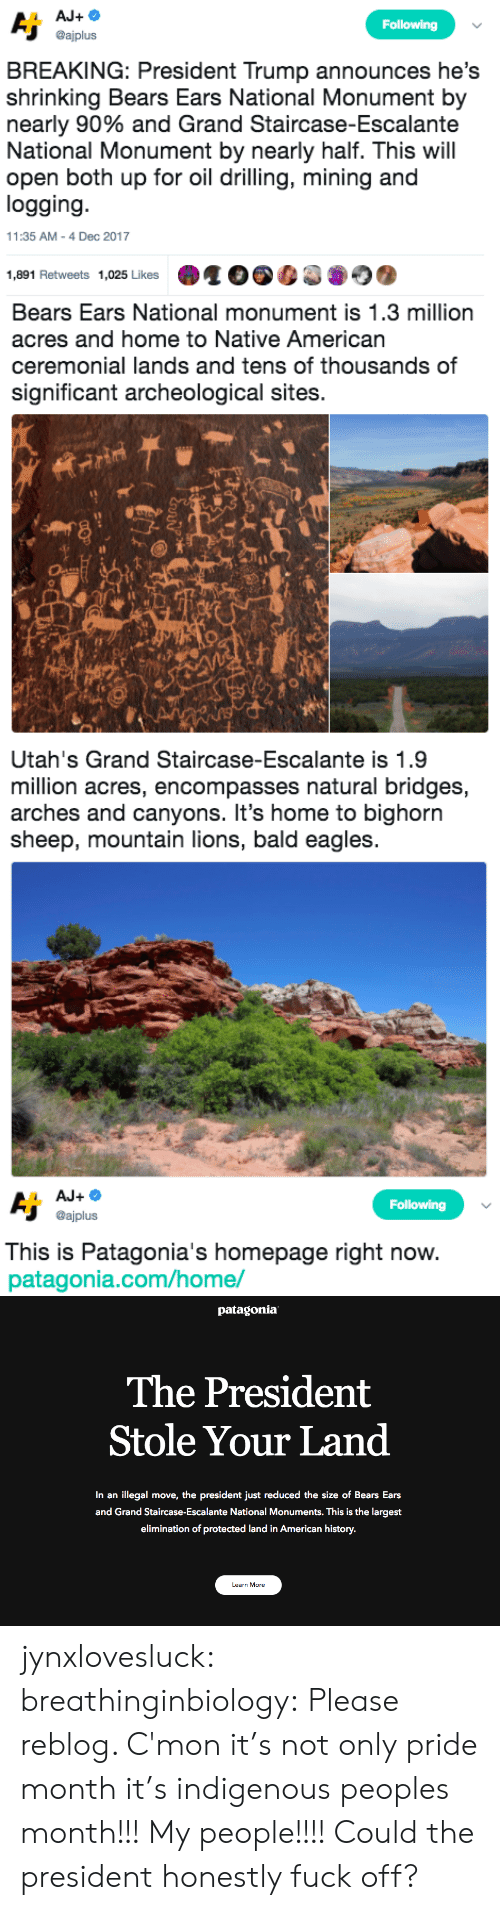 indigenous: Following  @ajplus  BREAKING: President Trump announces he's  shrinking Bears Ears National Monument by  nearly 90% and Grand Staircase-Escalante  National Monument by nearly half. This will  open both up for oil drilling, mining and  logging  11:35 AM-4 Dec 2017  1,891 Retweets 1,025 Likes   Bears Ears National monument is 1.3 million  acres and home to Native American  ceremonial lands and tens of thousands of  significant archeological sites.  sh   Utah's Grand Staircase-Escalante is 1.9  million acres, encompasses natural bridges,  arches and canyons. It's home to bighorn  sheep, mountain lions, bald eagles   Following  @ajplus  This is Patagonia's homepage right now  patagonia.com/home/   patagonia  The President  Stole Your Land  In an illegal move, the president just reduced the size of Bears Ears  and Grand Staircase-Escalante National Monuments. This is the largest  elimination of protected land in American history.  Learn More jynxlovesluck:  breathinginbiology: Please reblog.   C'mon it's not only pride month it's indigenous peoples month!!! My people!!!! Could the president honestly fuck off?